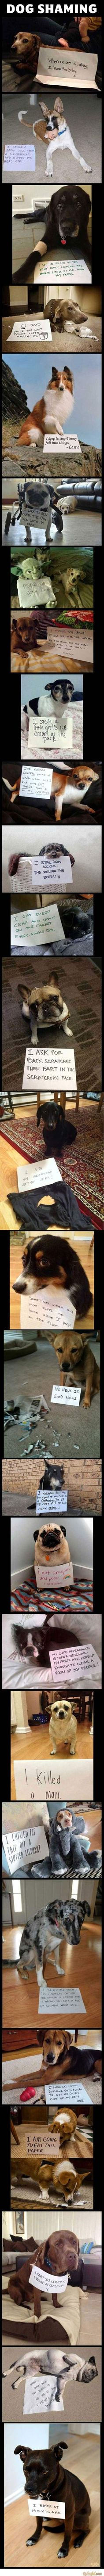 The ultimate dog shaming compilation